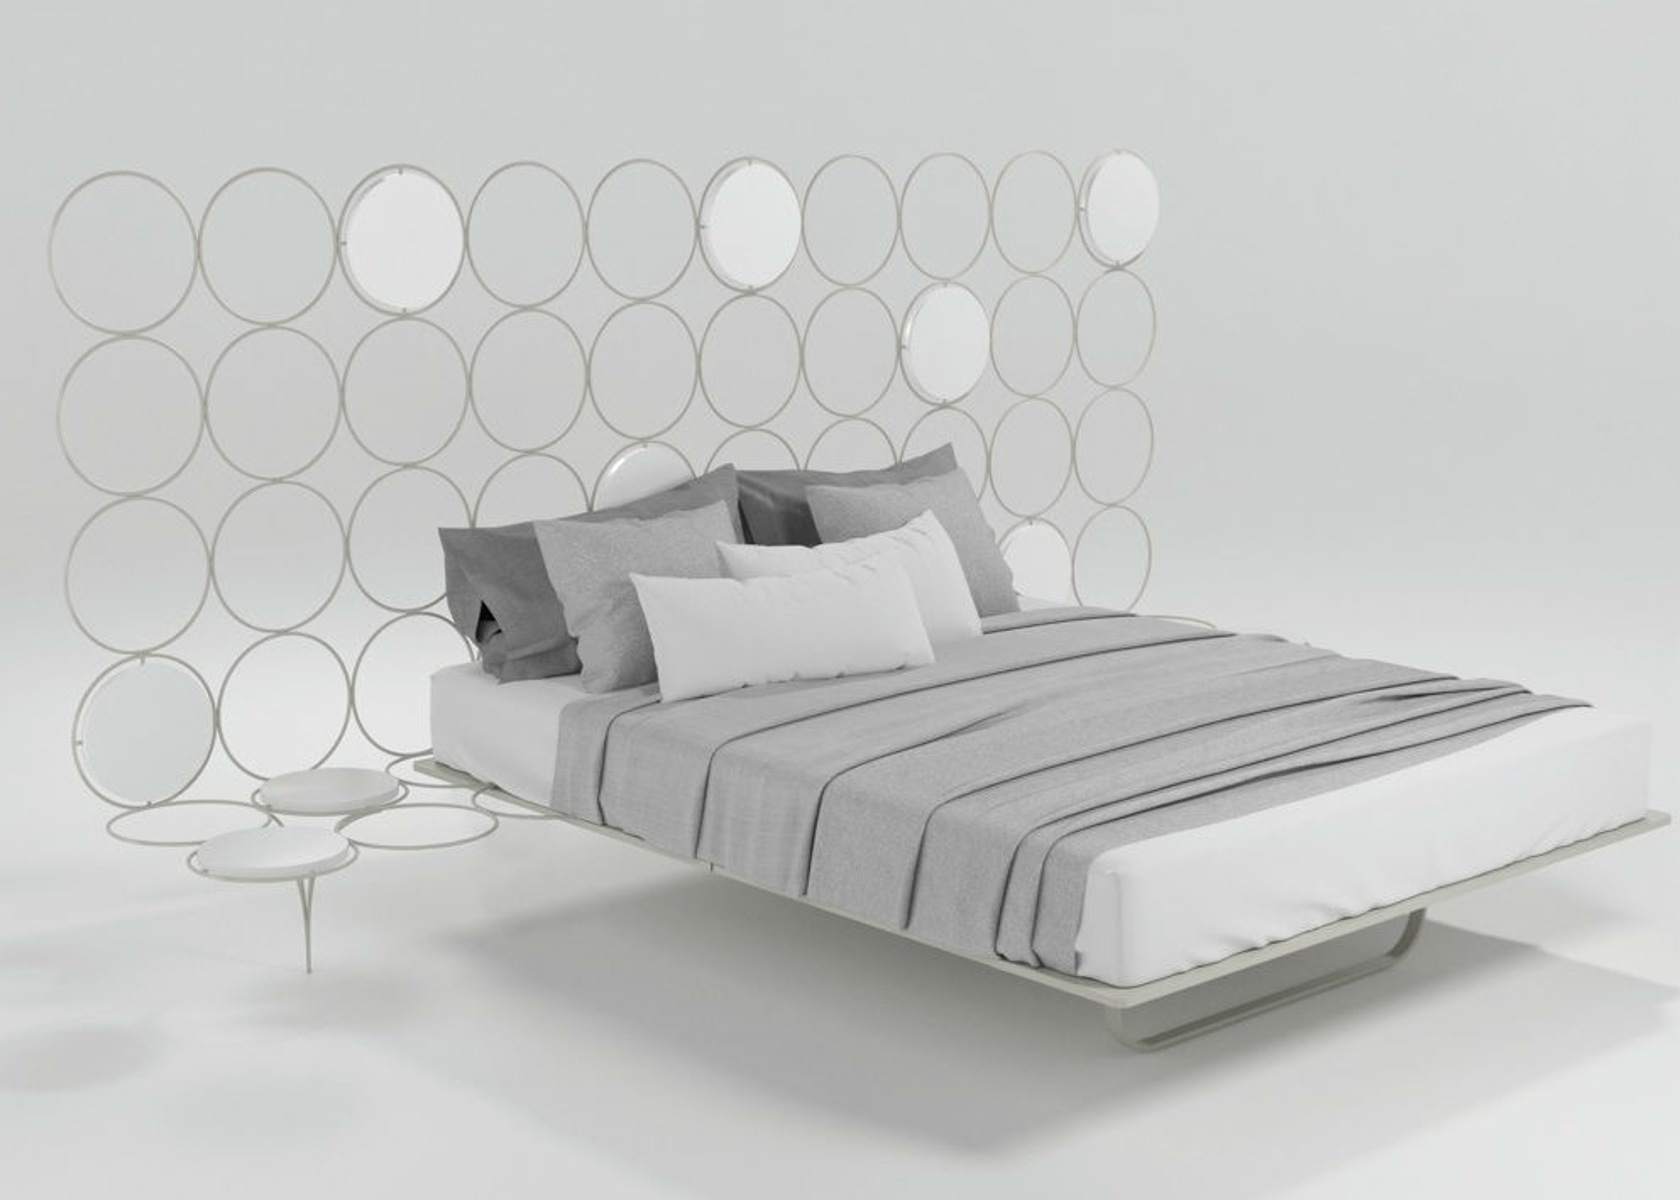 lyon design bett metallbettenshop. Black Bedroom Furniture Sets. Home Design Ideas